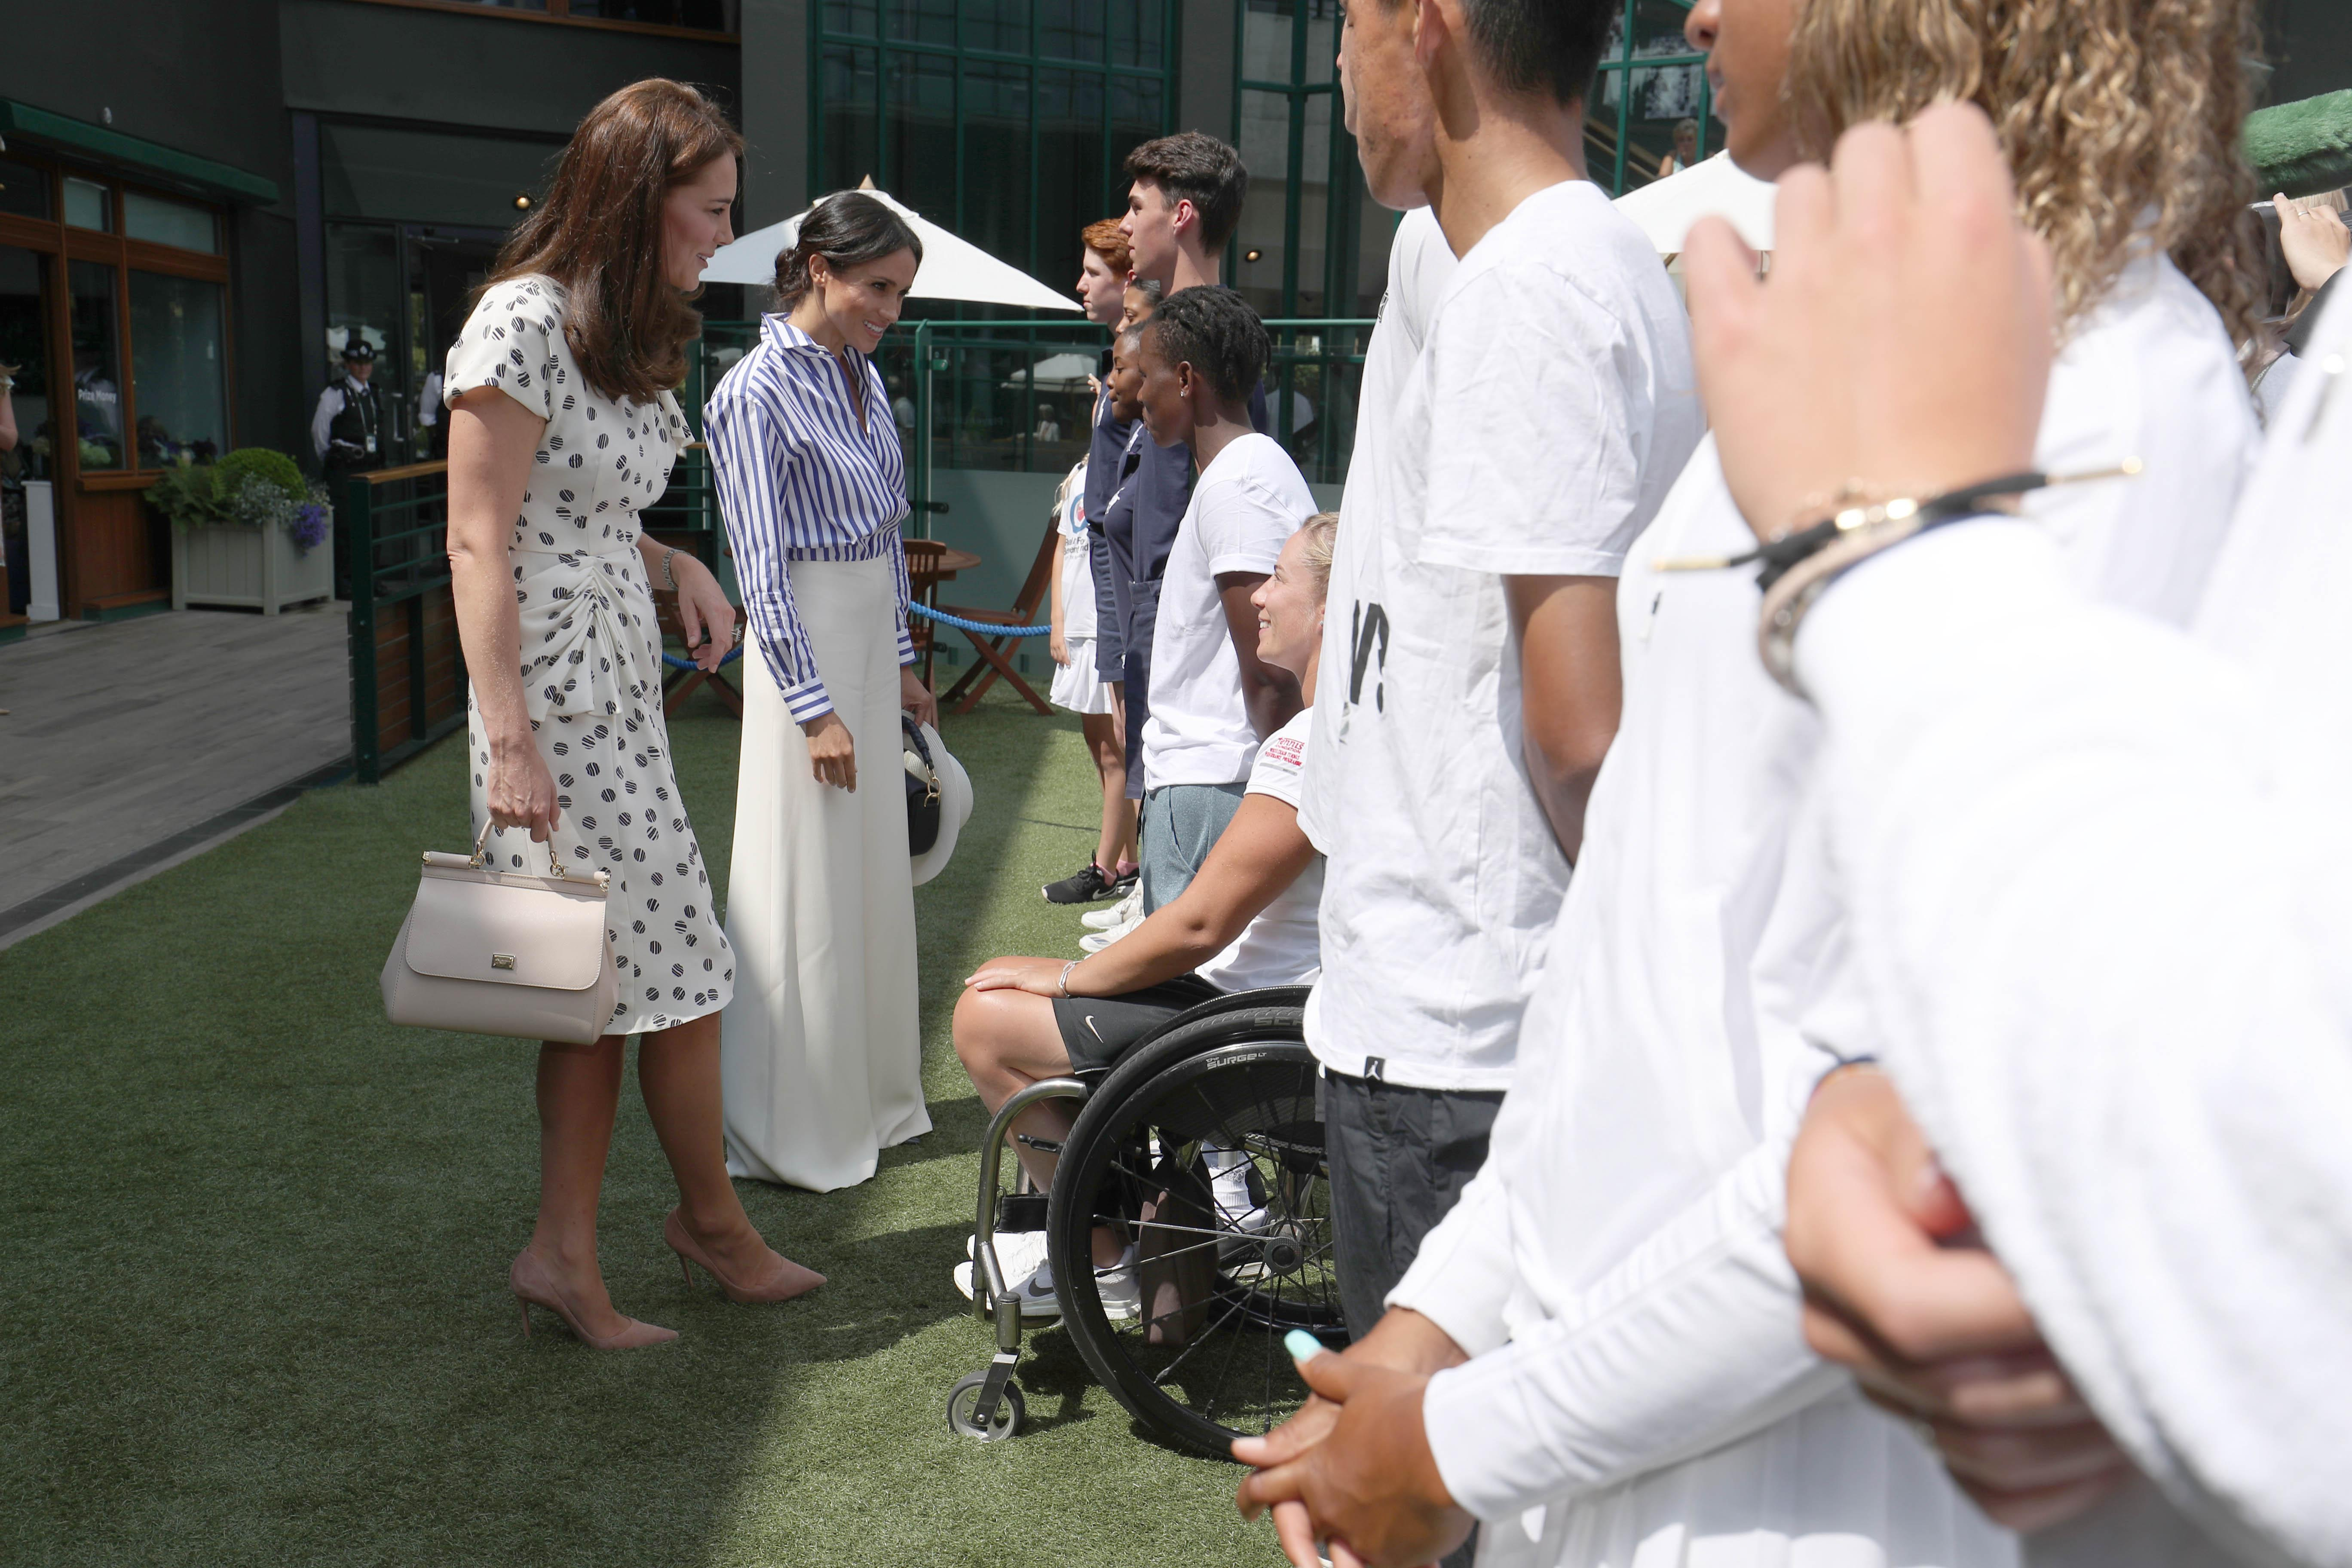 LONDON, ENGLAND - JULY 14: Catherine, Duchess of Cambridge and Meghan, Duchess of Sussex meet Wheelchair competitors Lucy Shuker of Great Britain and KG Montjane of South Africa during a visit to the Wimbledon Championships at All England Lawn Tennis and Croquet Club on July 14, 2018 in London, England. (Photo by Jonathan Brady - WPA Pool/Getty Images)